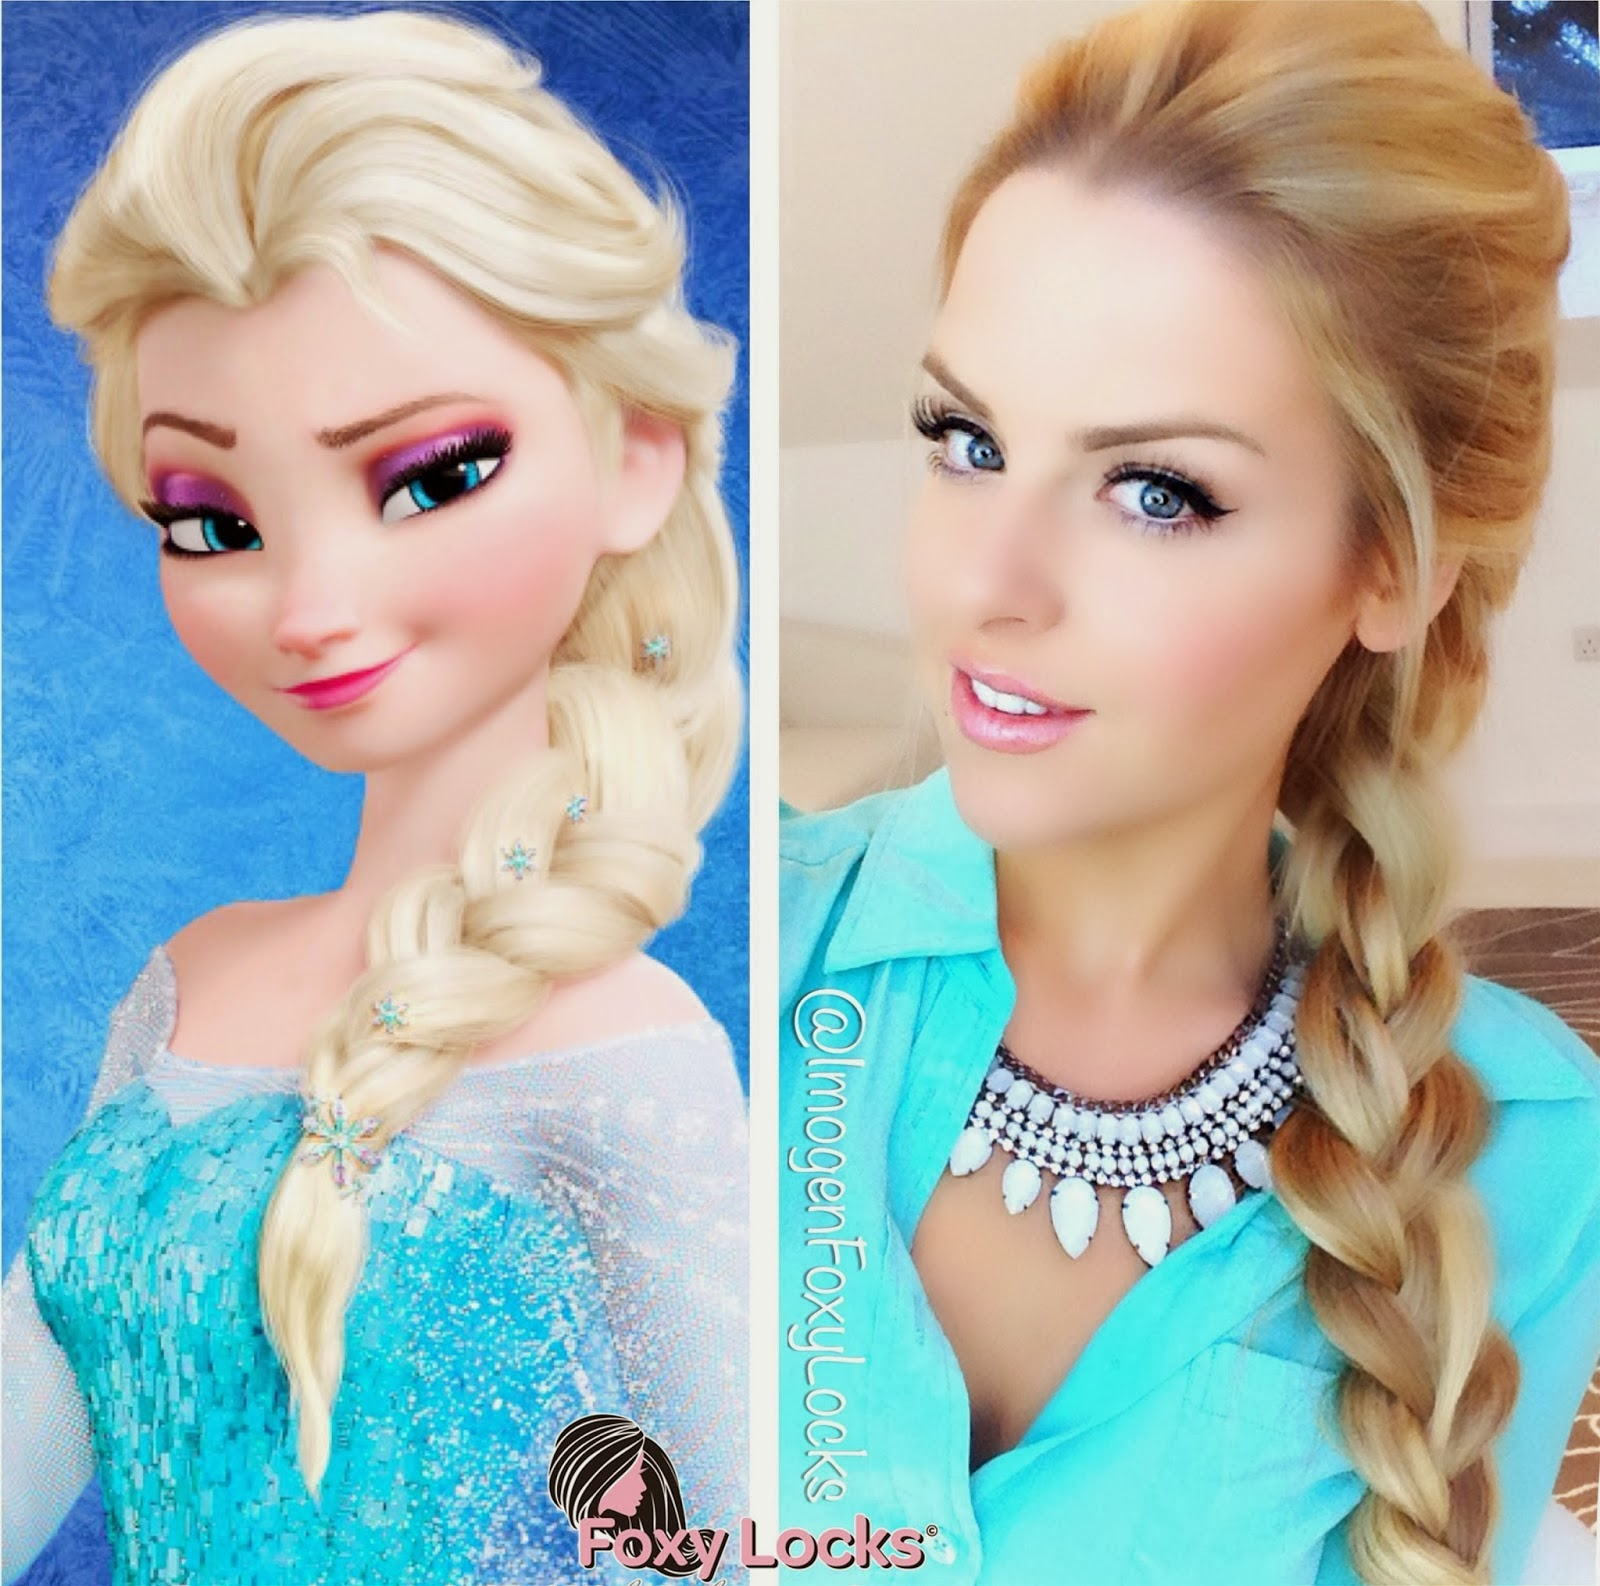 Braided Crown Elsa S Braid Hair Tutorial From Disney S